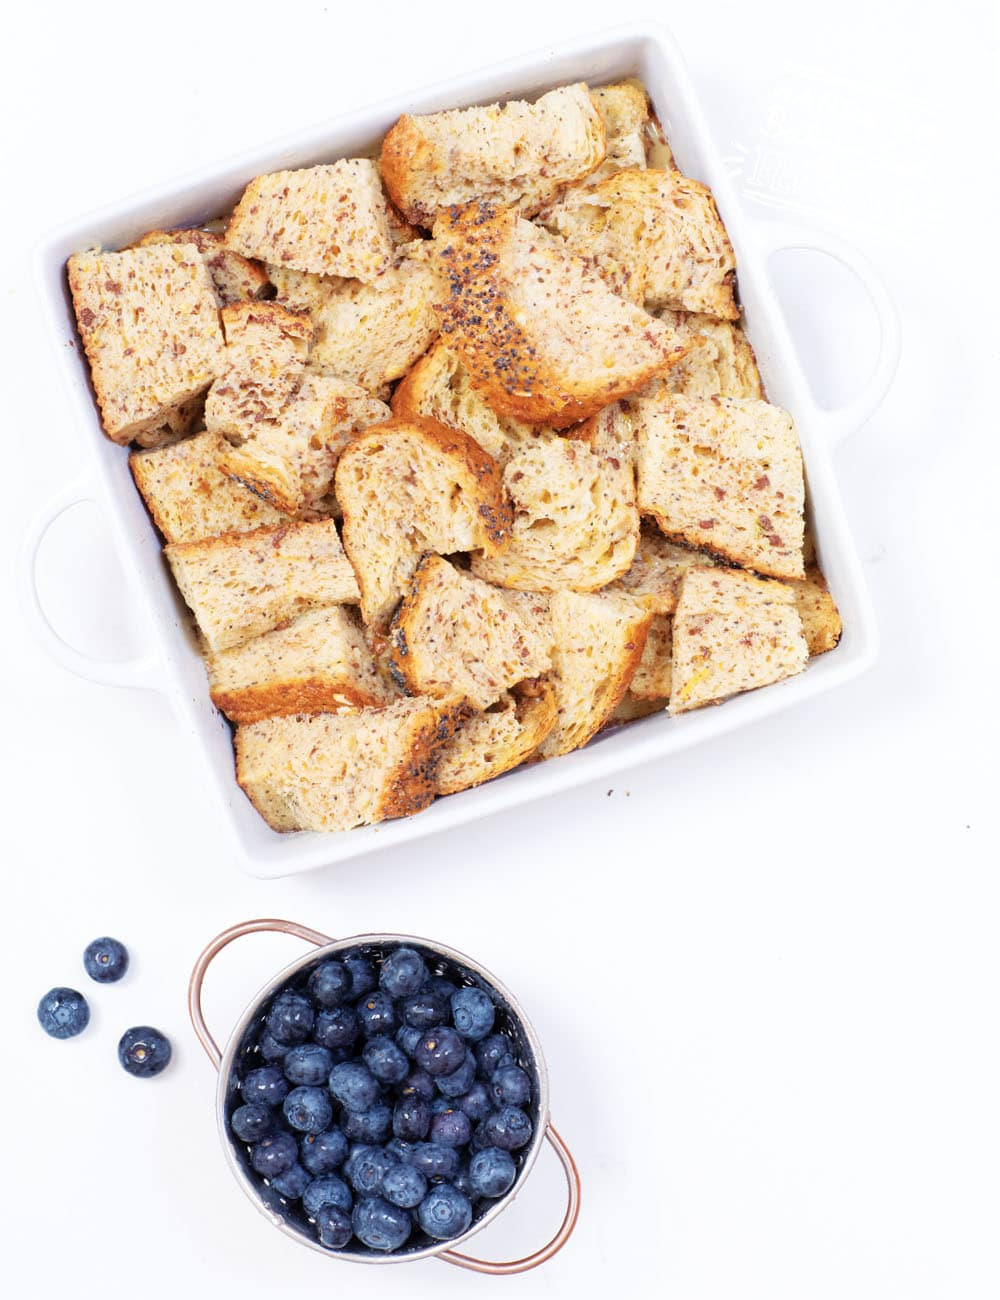 Baby Led Feeding Overnight Blueberry French Toast Recipe Images3